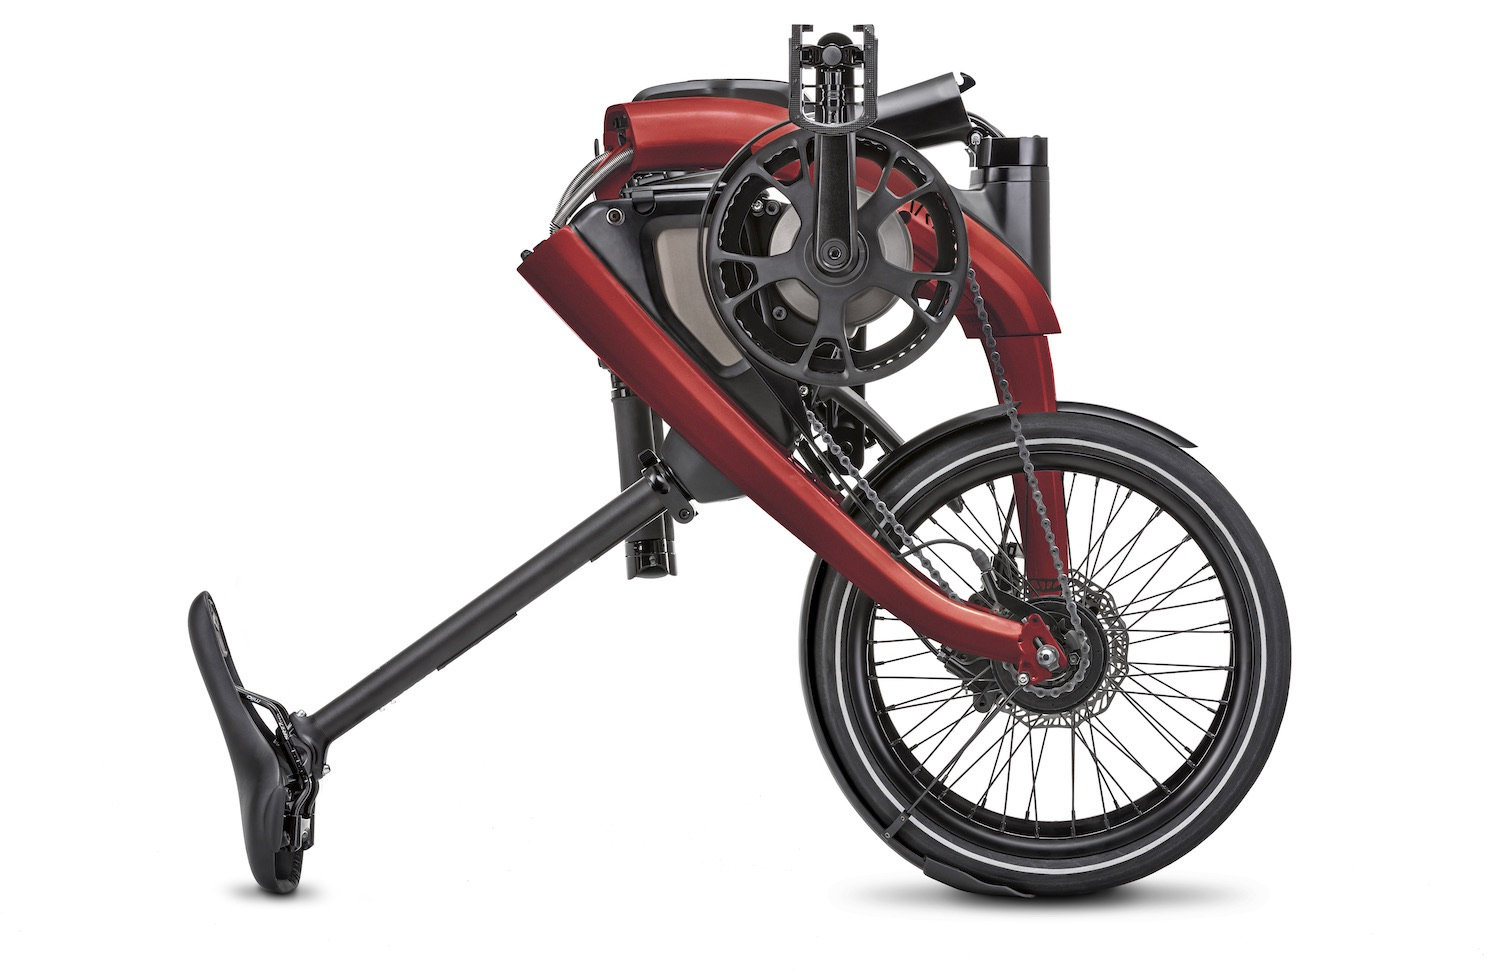 2019 Editors Choice For Best Electric Bikes Prices >> Gm Ariv Folding Electric Bike Official Specs And Price